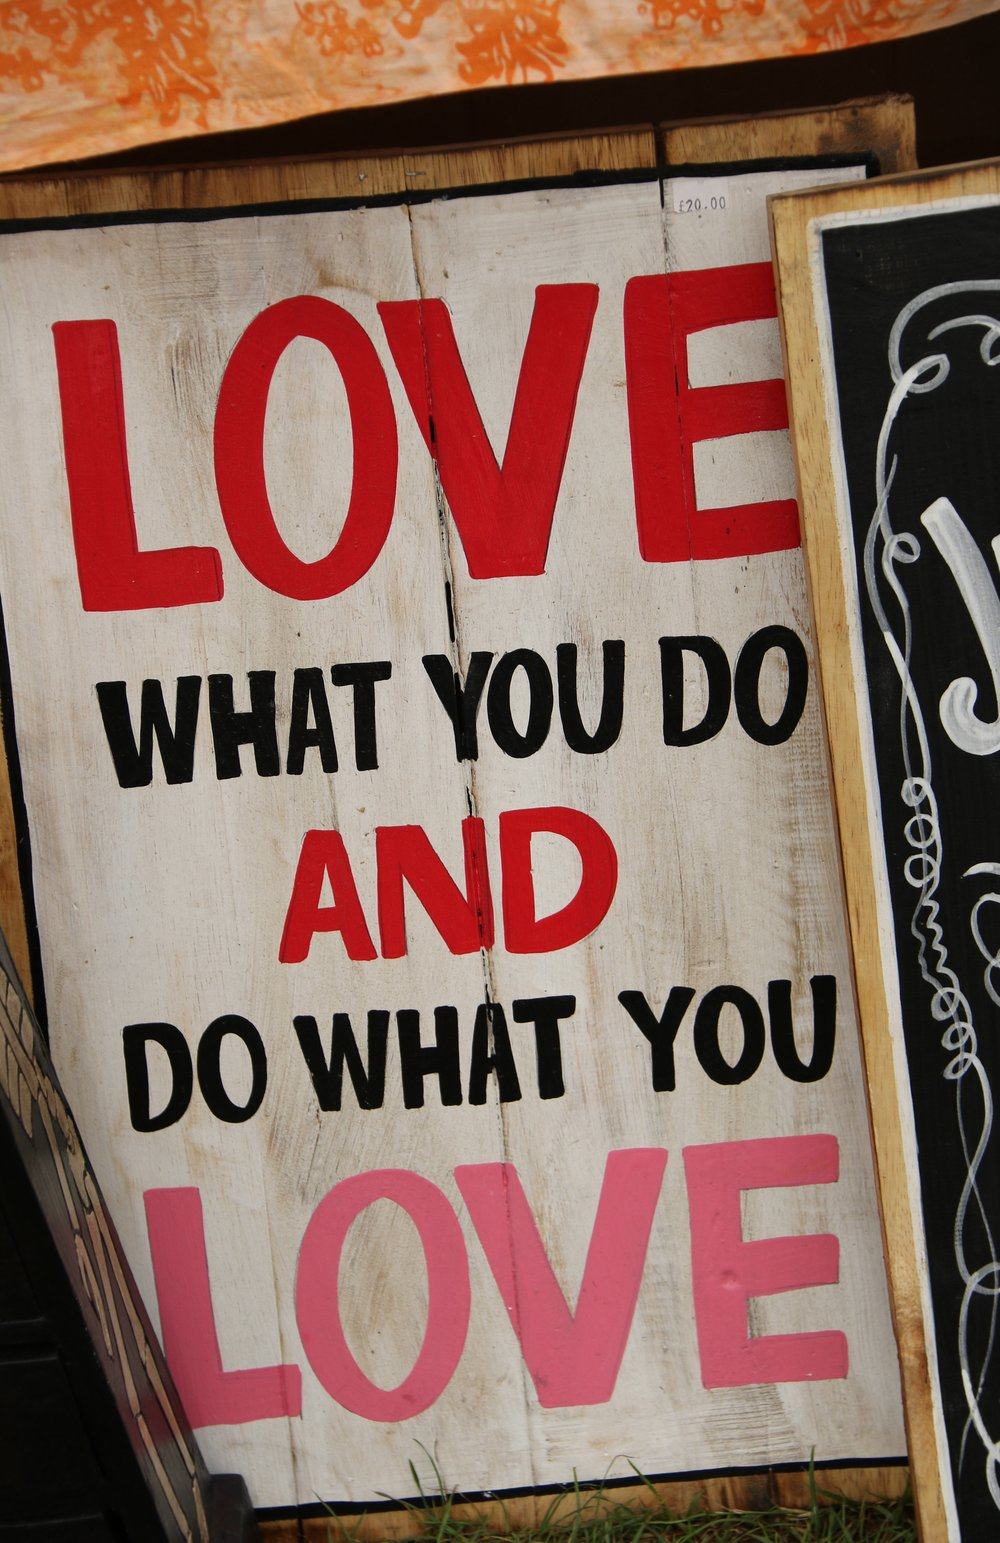 Loave What You Do.jpg